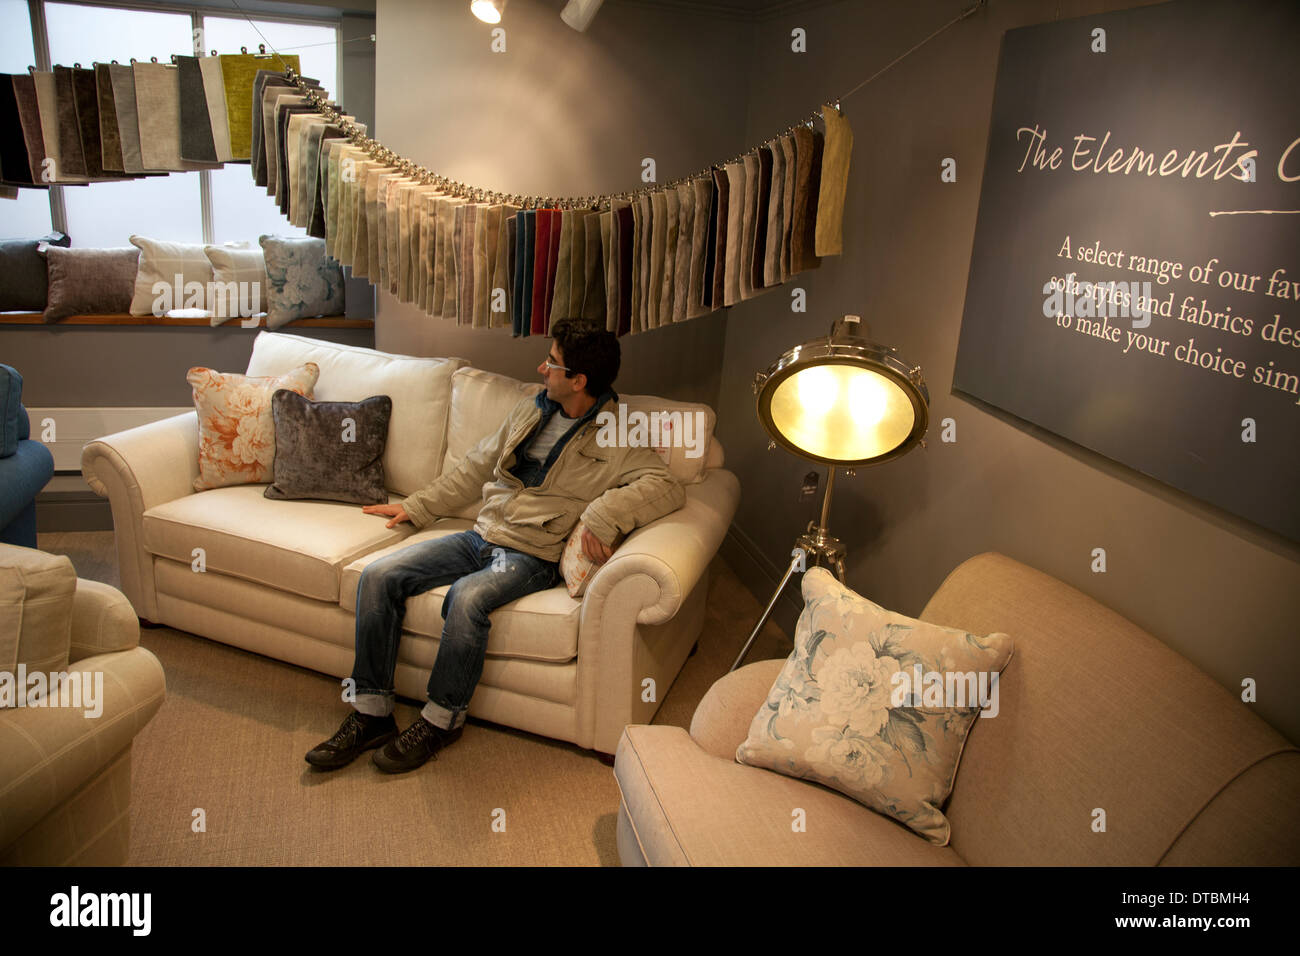 Man Trying out Couches in Store - London UK - Stock Image